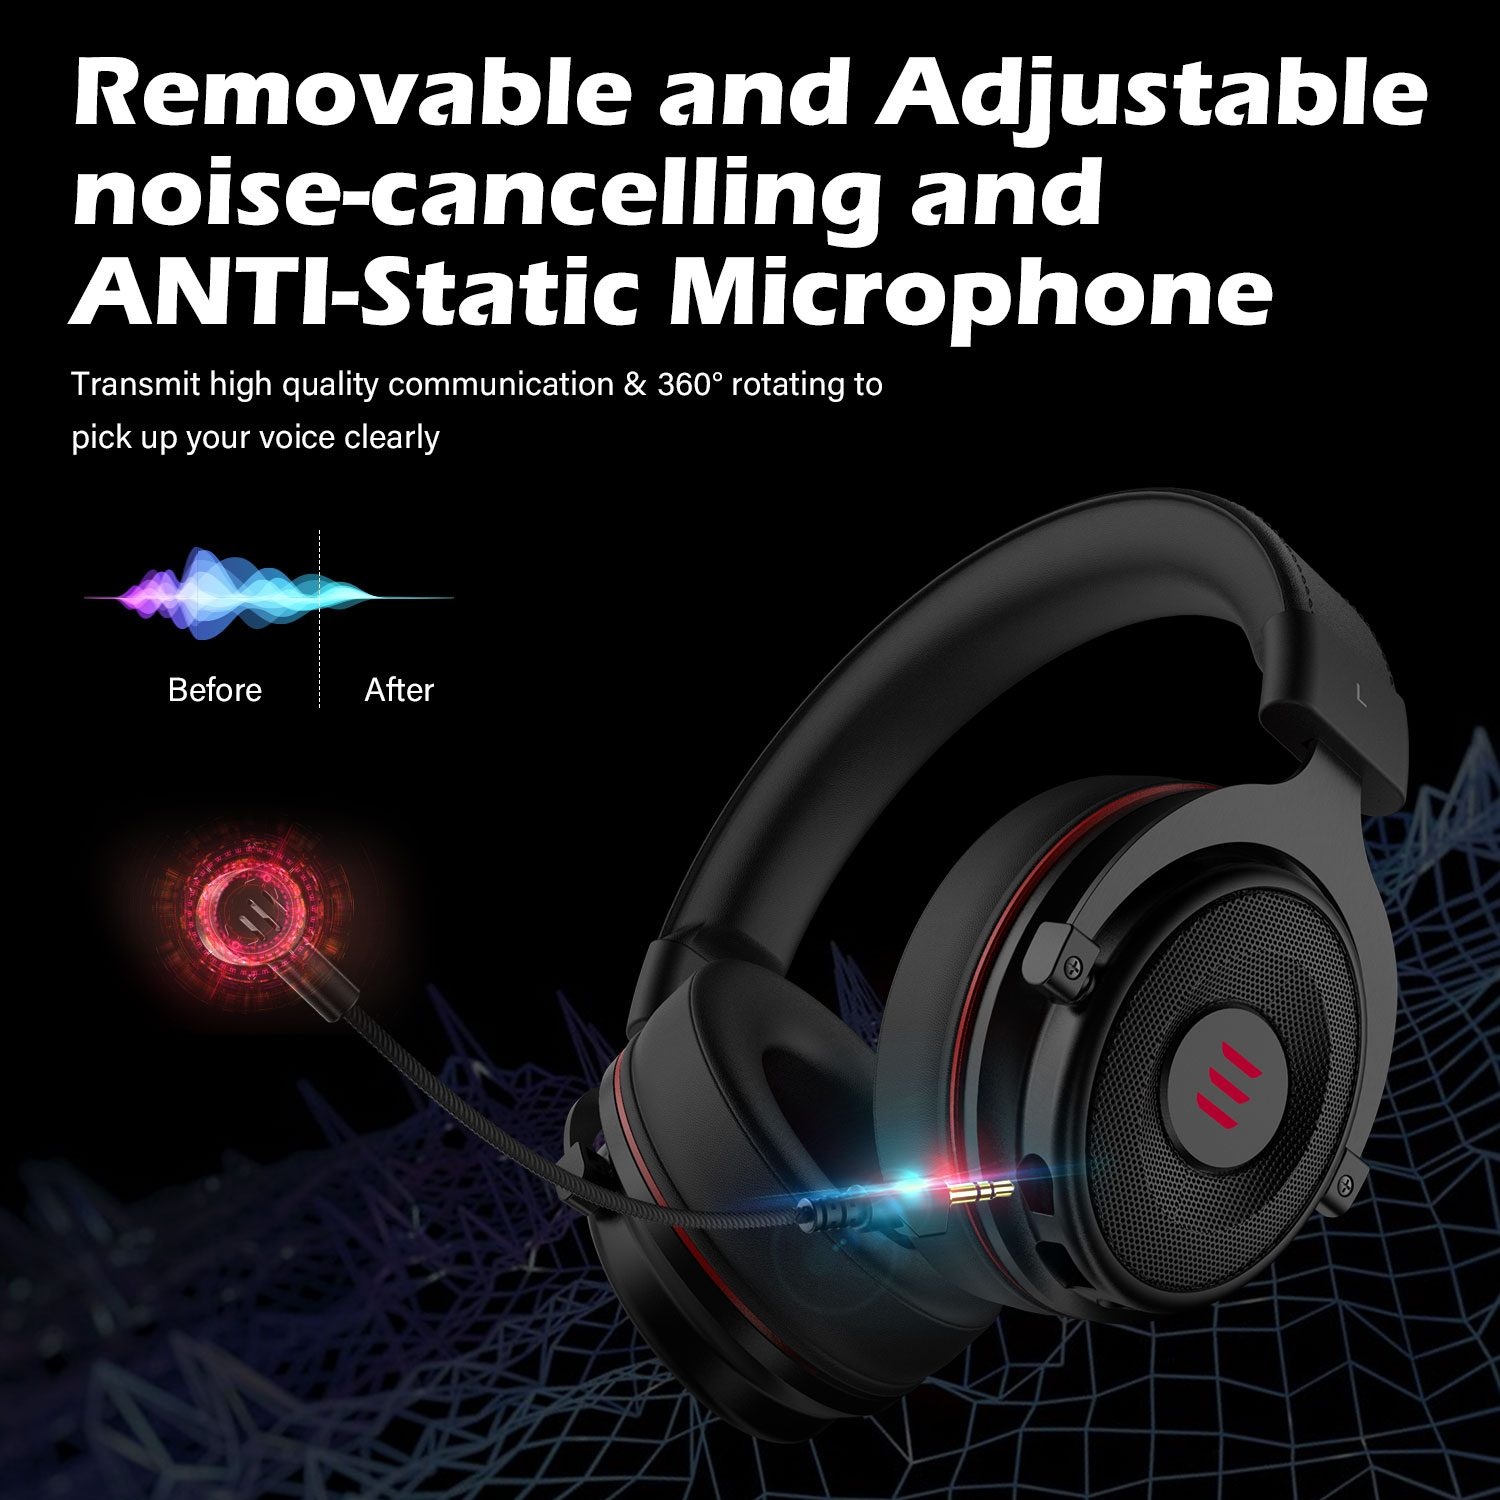 EKSA Gaming Headset Gamer E900 PRO Headset 7.1 Surround Sound Wired Headphones LED USB/3.5mm Earphones with Mic For Xbox PC PS4